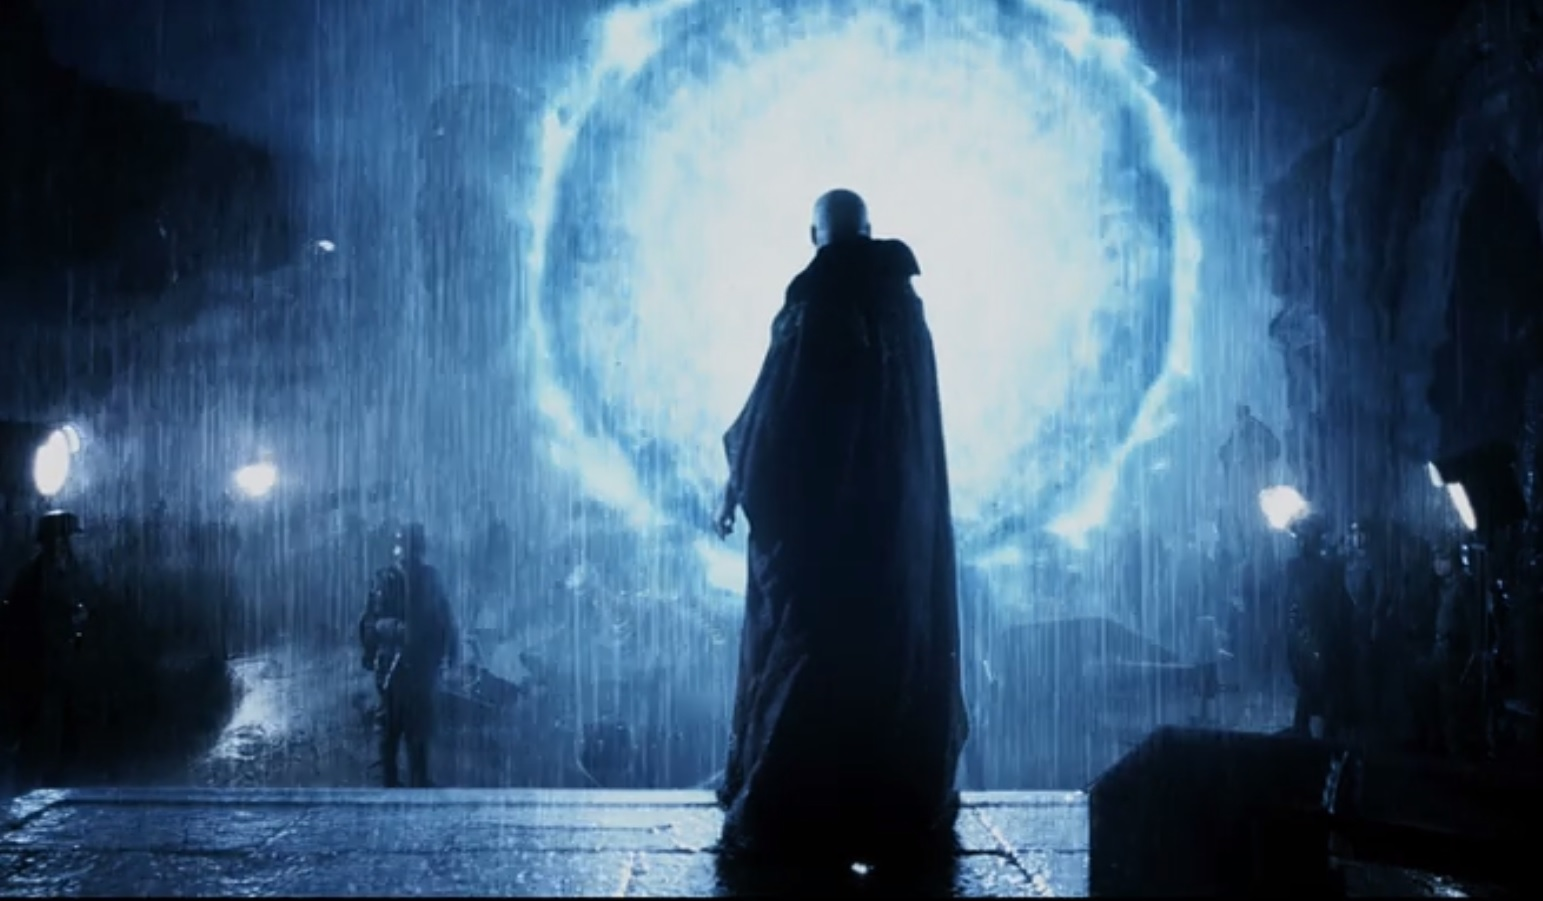 Lovecraftian movies currently on Netflix as of June 22, 2015